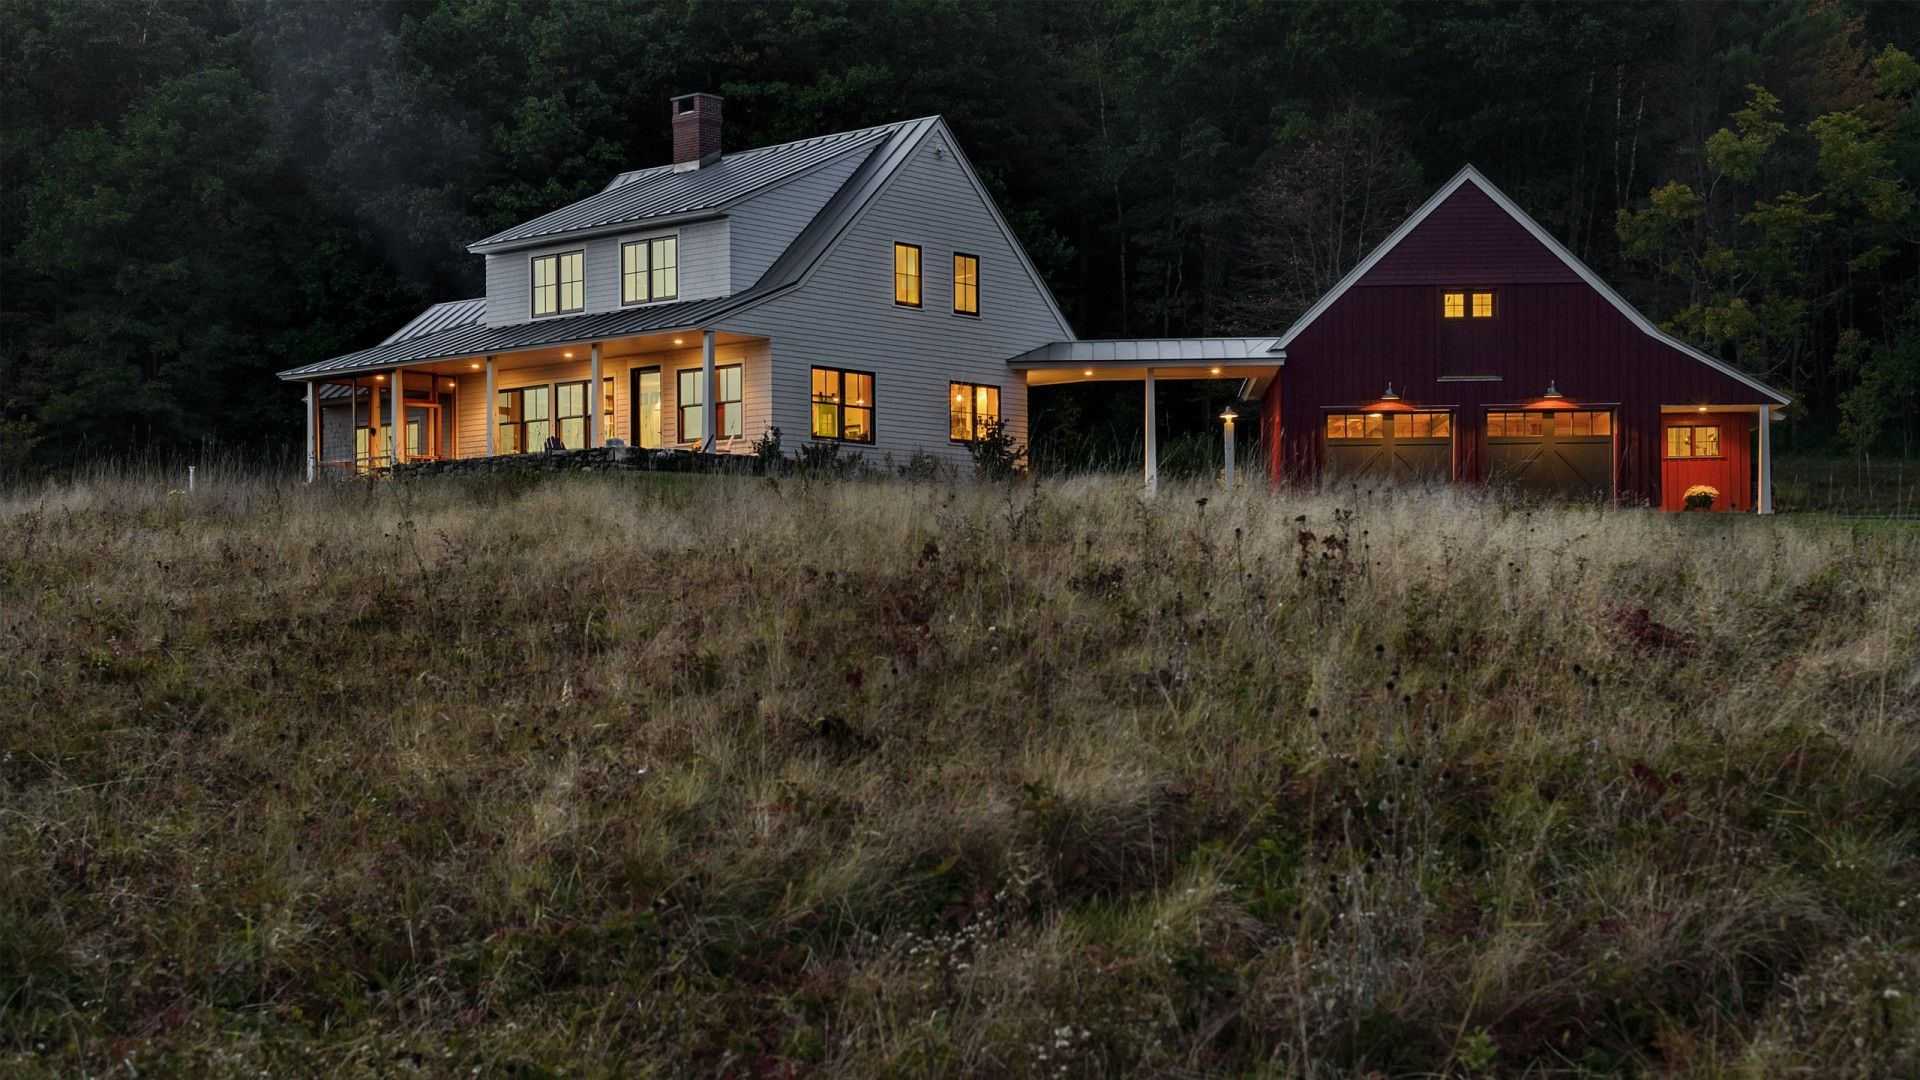 Dash landing farmhouse freeport maine whitten architects